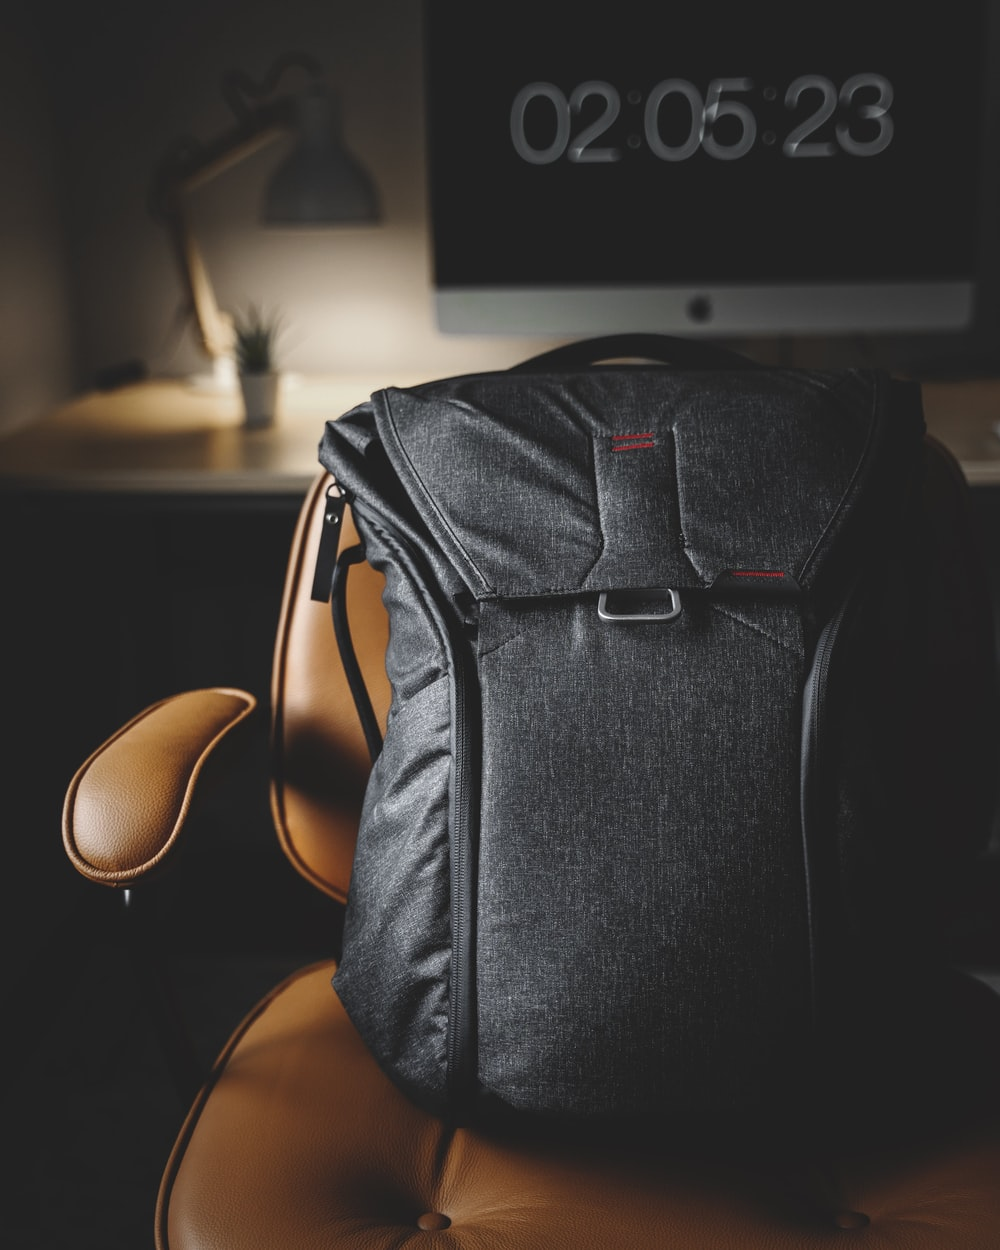 black backpack on brown leather armchair